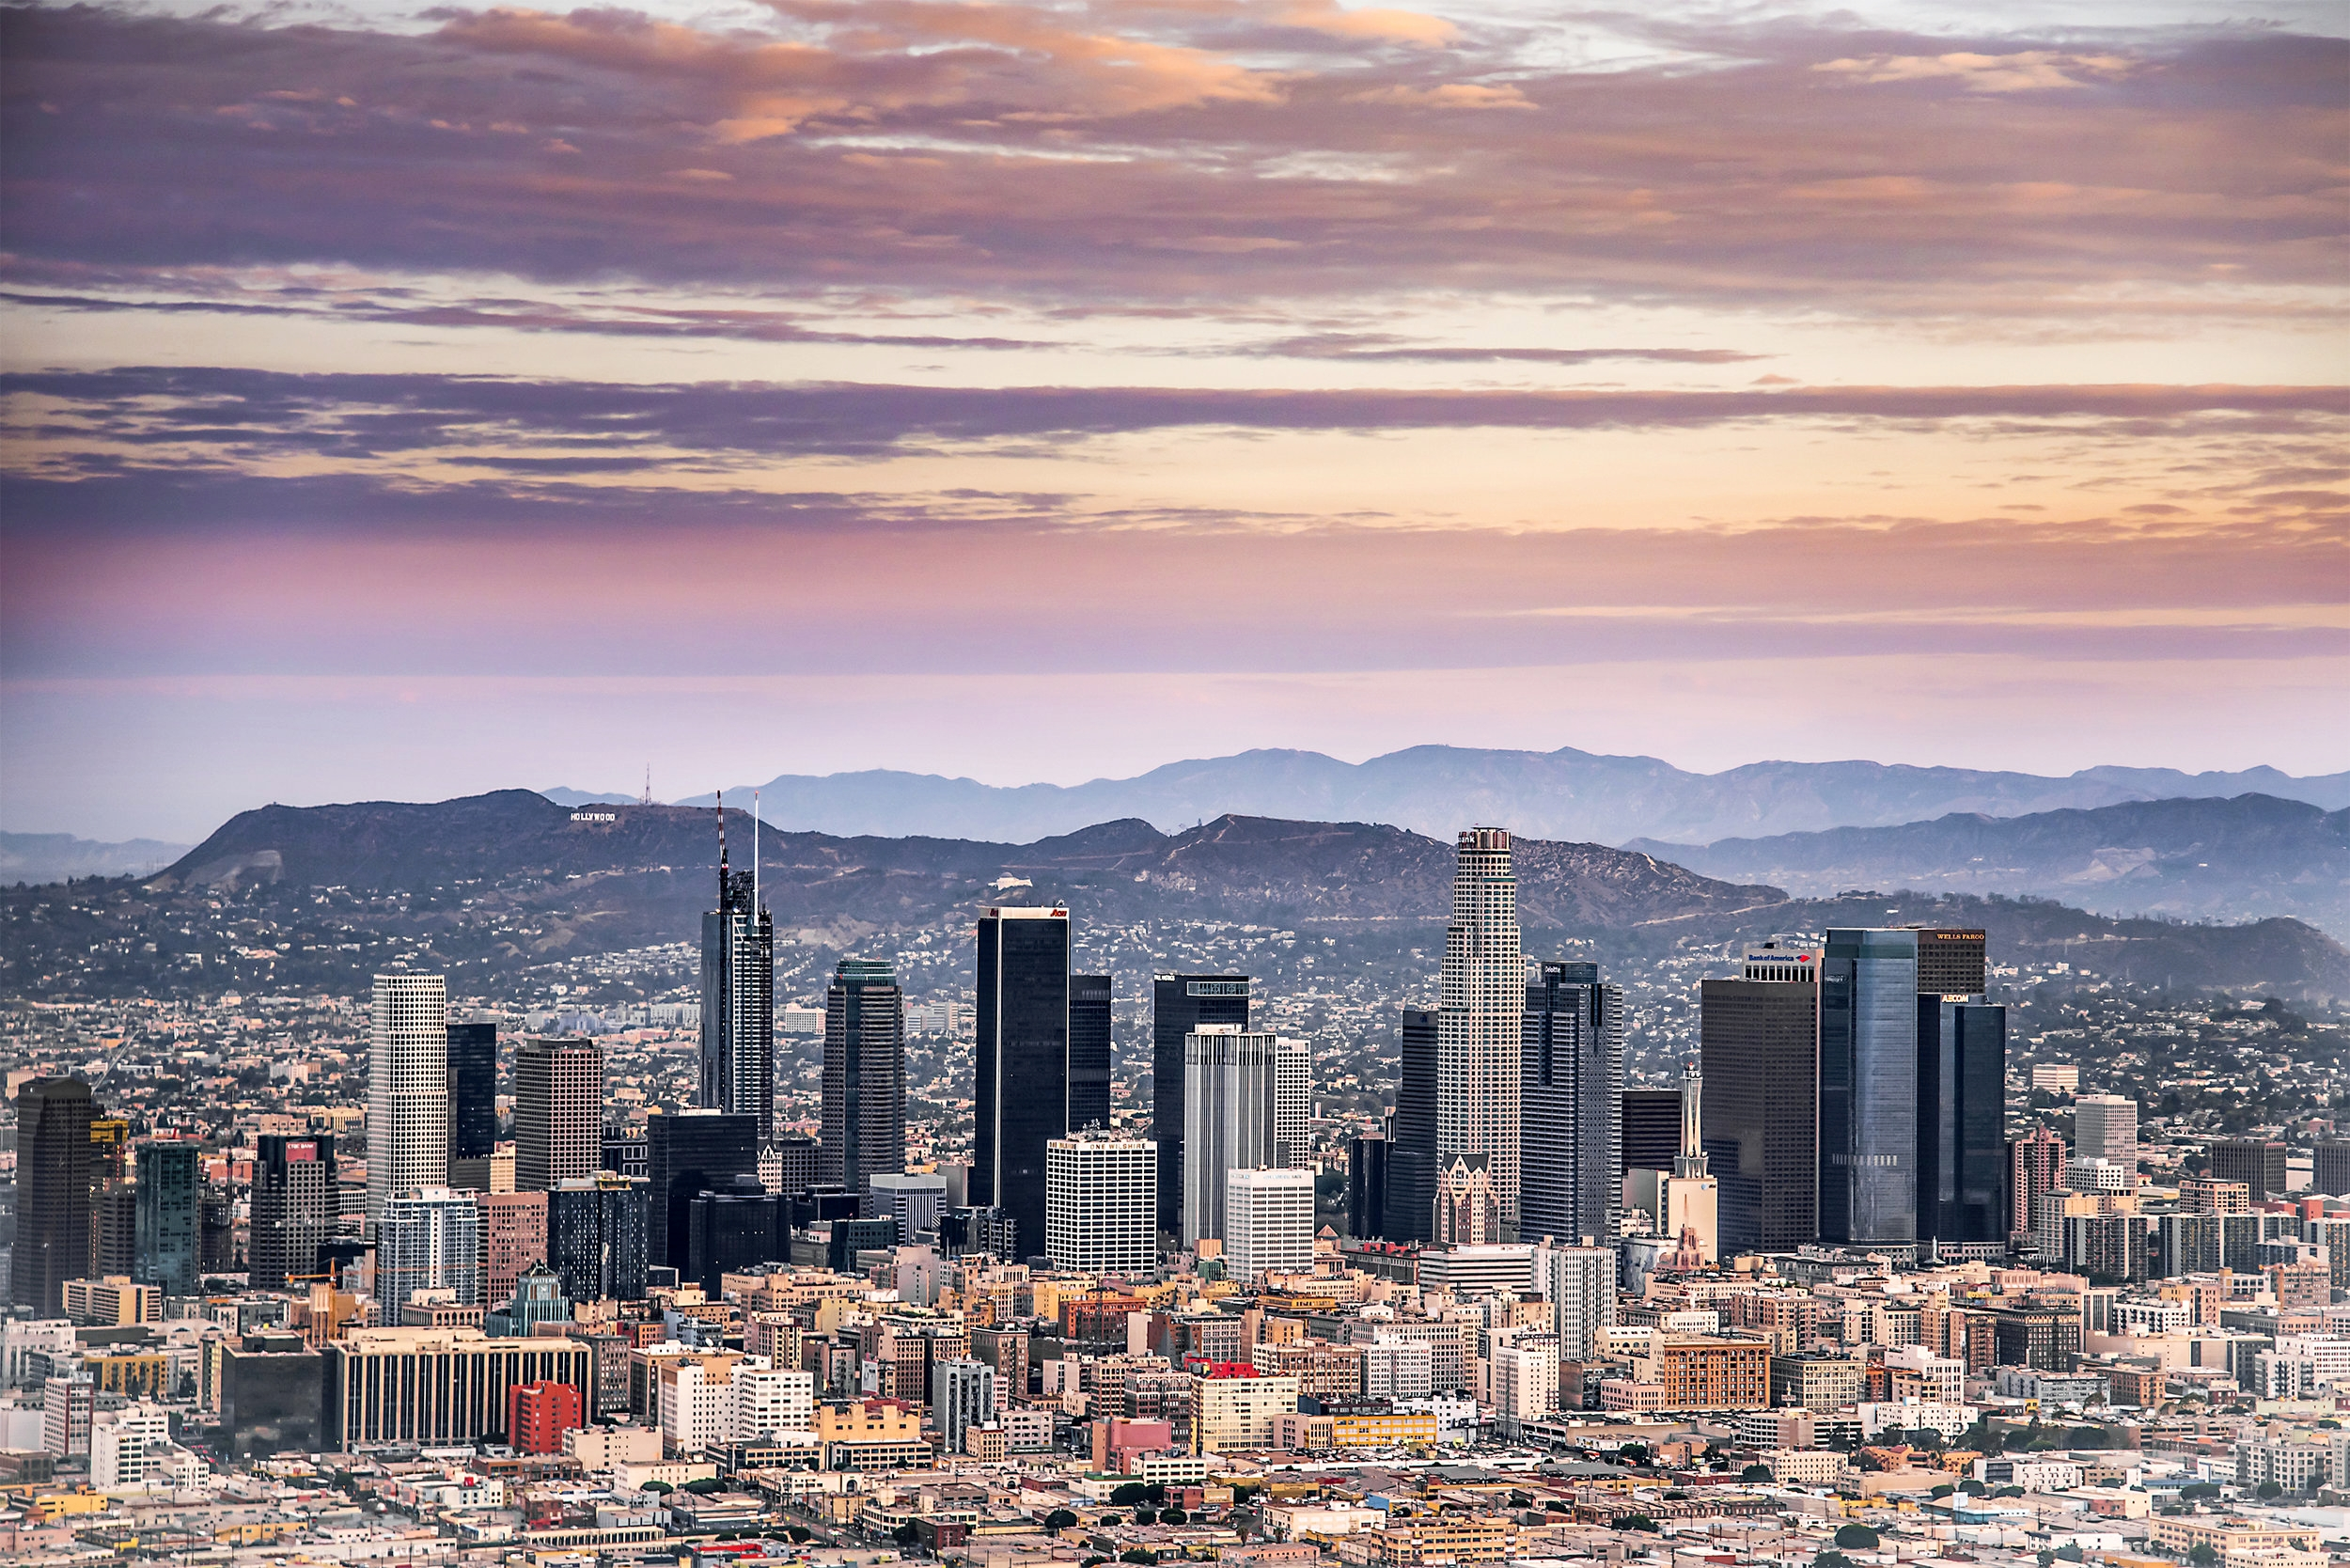 Los Angeles City Guide - Forbes Travel Guide - The Light Record